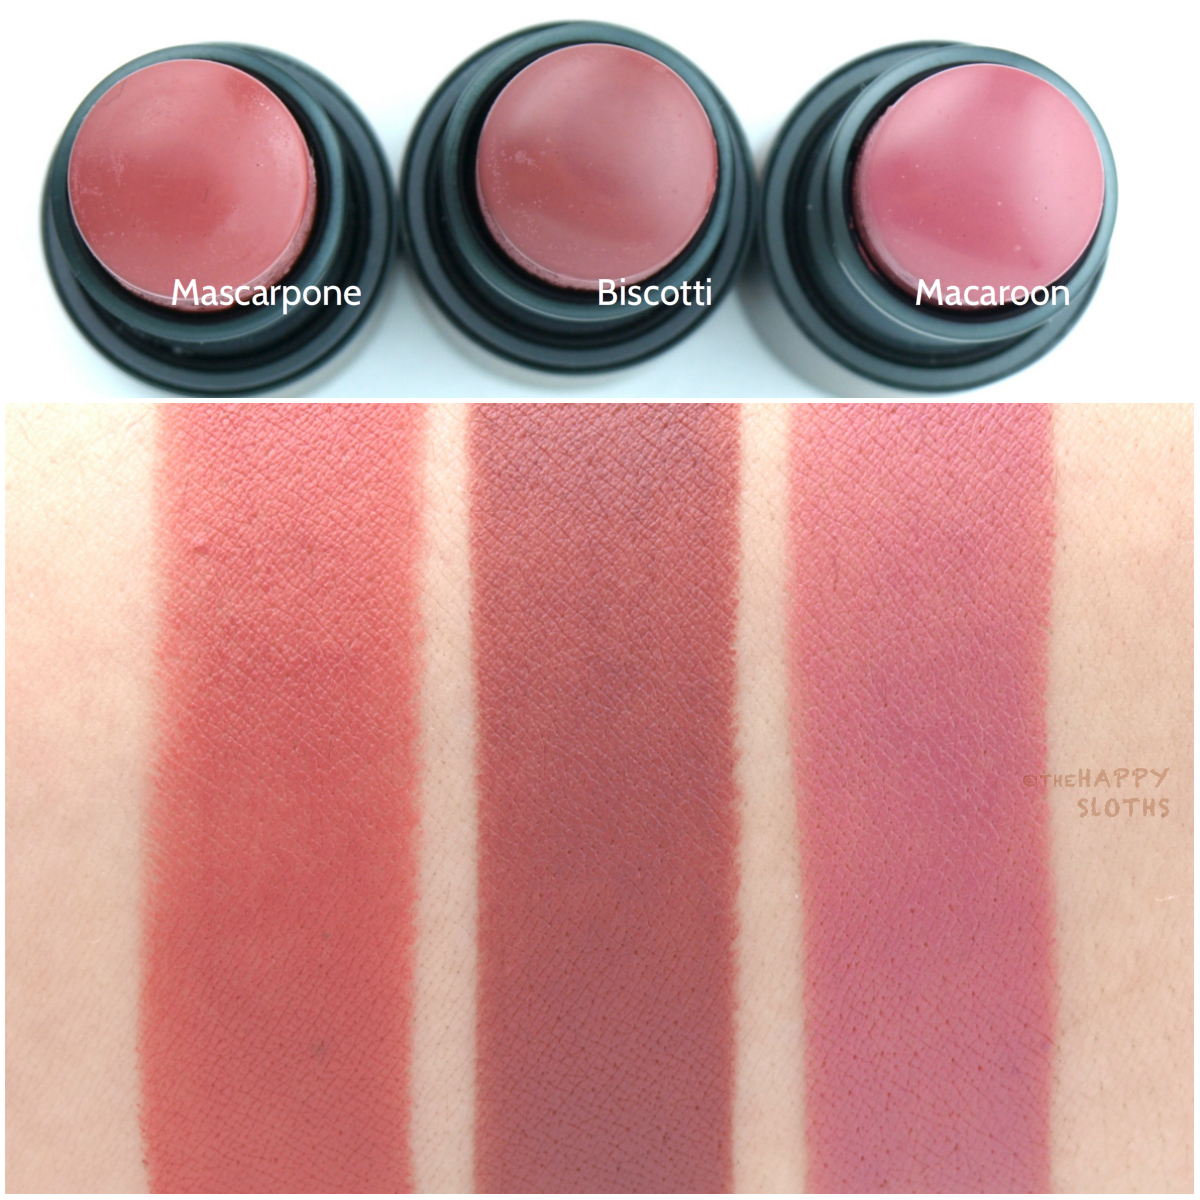 Bite Beauty Multistick Review and Swatches